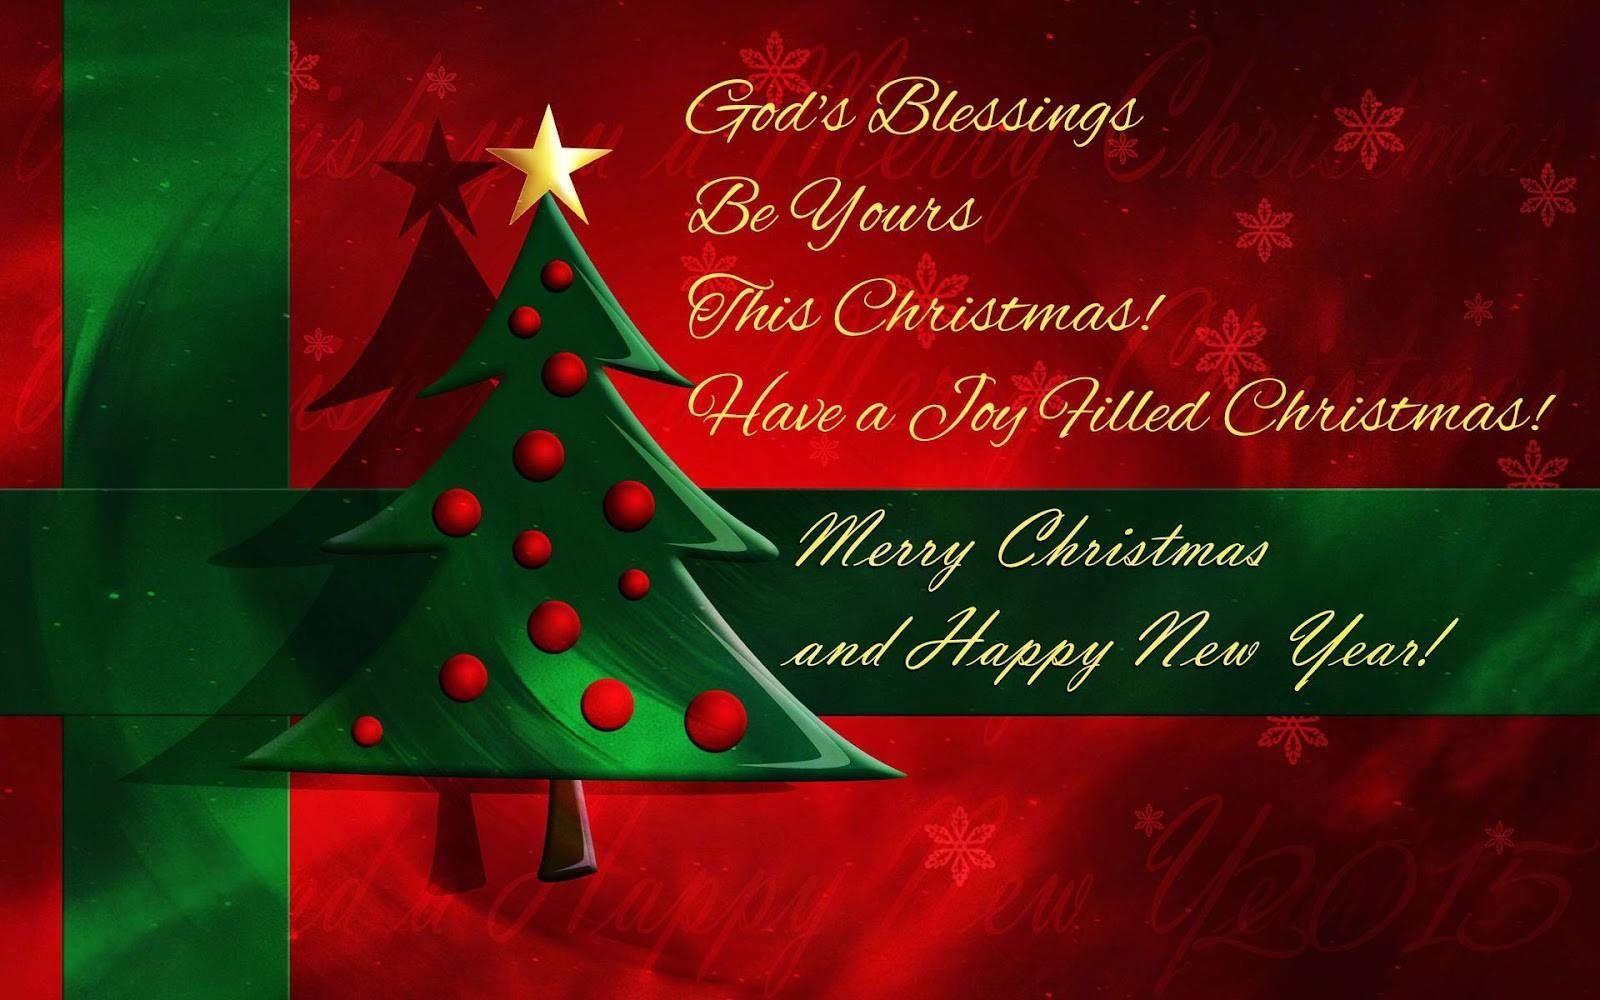 We wish you a merry Christmas and happy new year, written